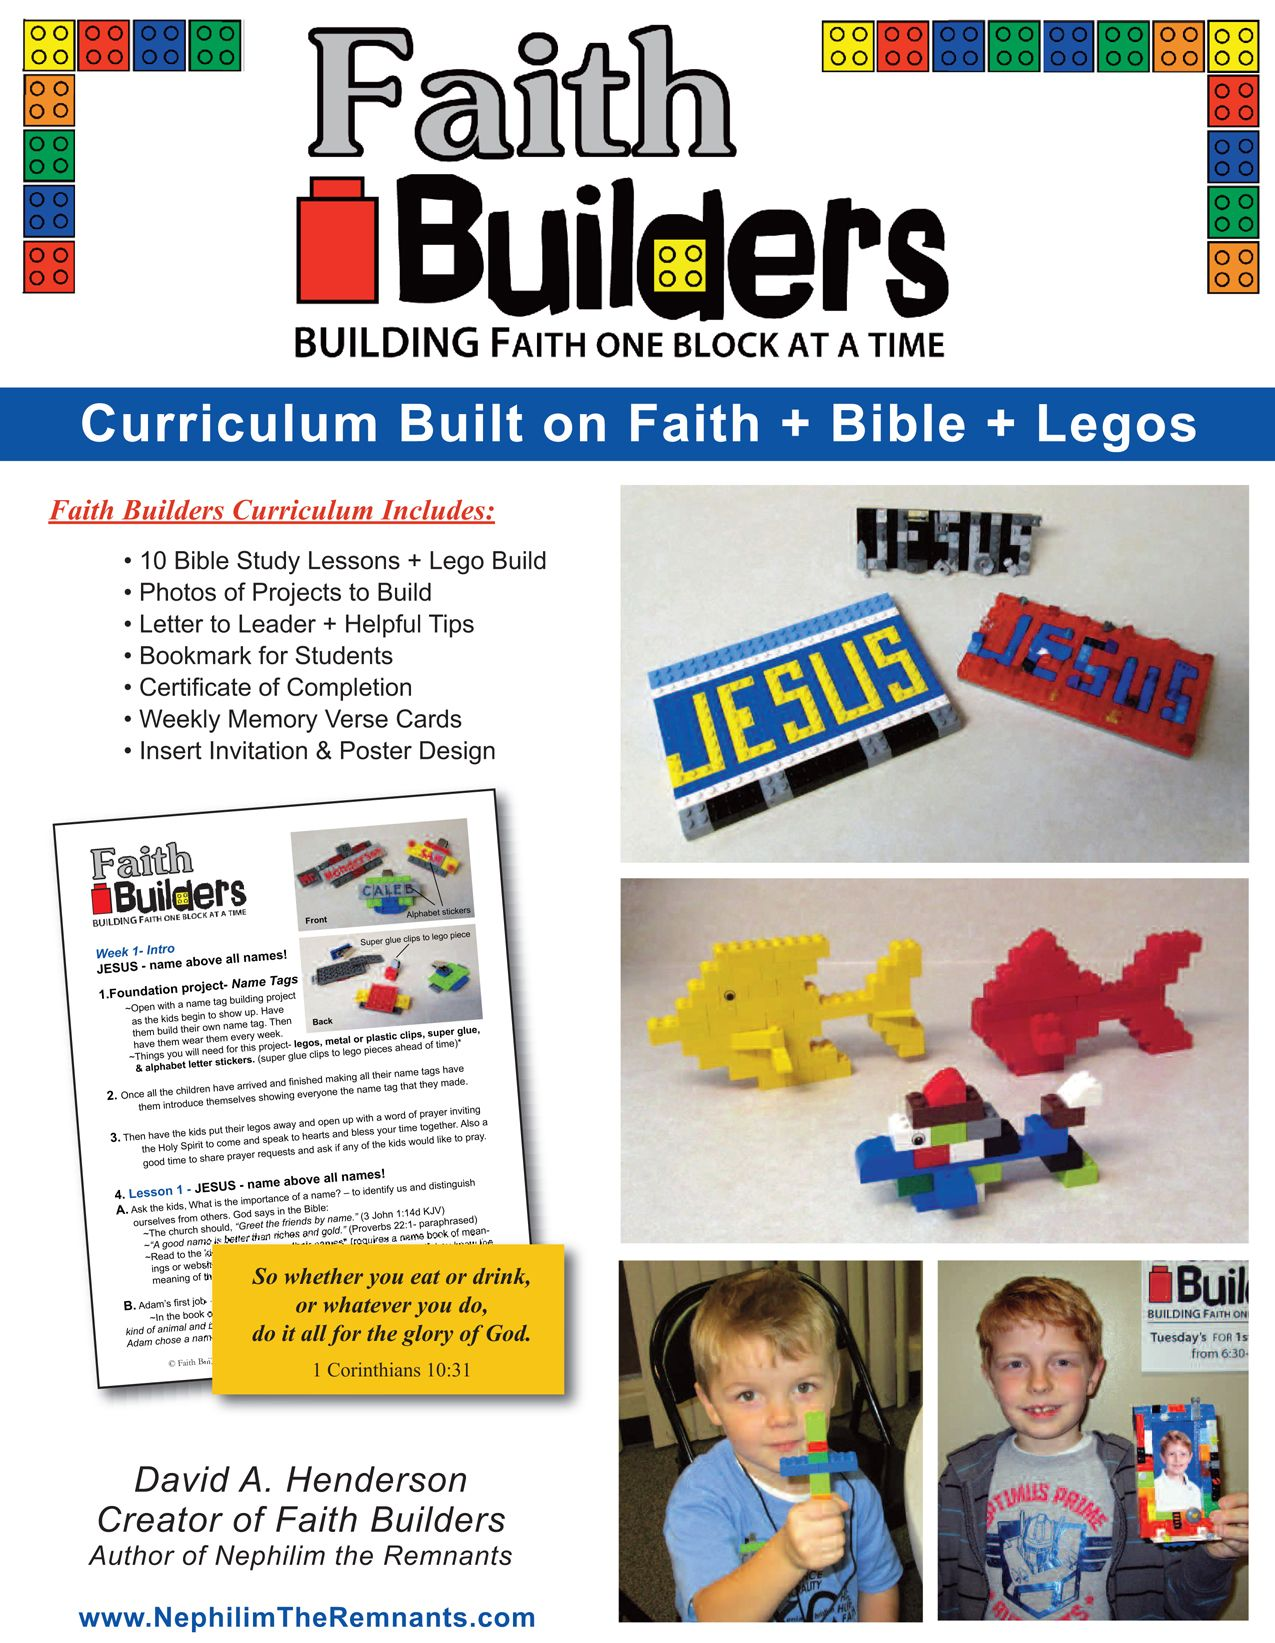 Looks Like An Interesting Curriculum For A Small Vbs Or